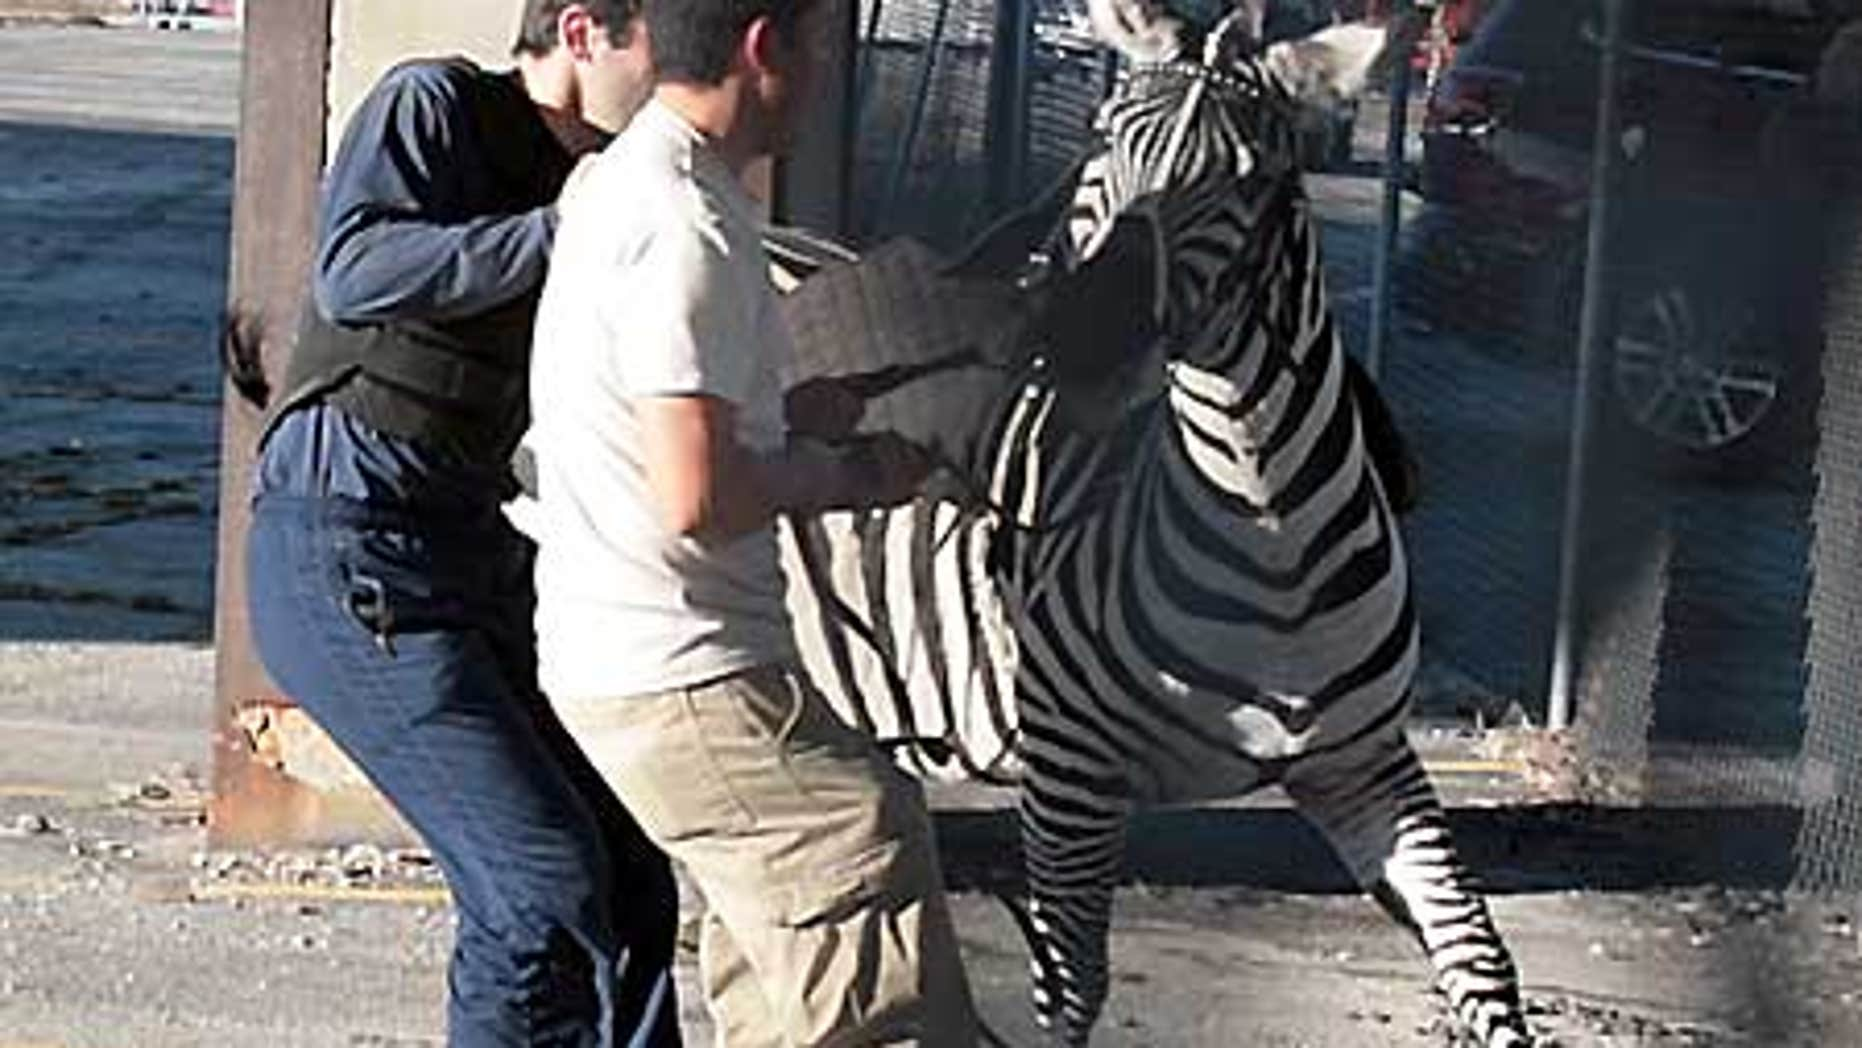 Feb. 18: Workers try to contain a zebra that broke loose from the Ringling Brothers and Barnum & Bailey Circus.